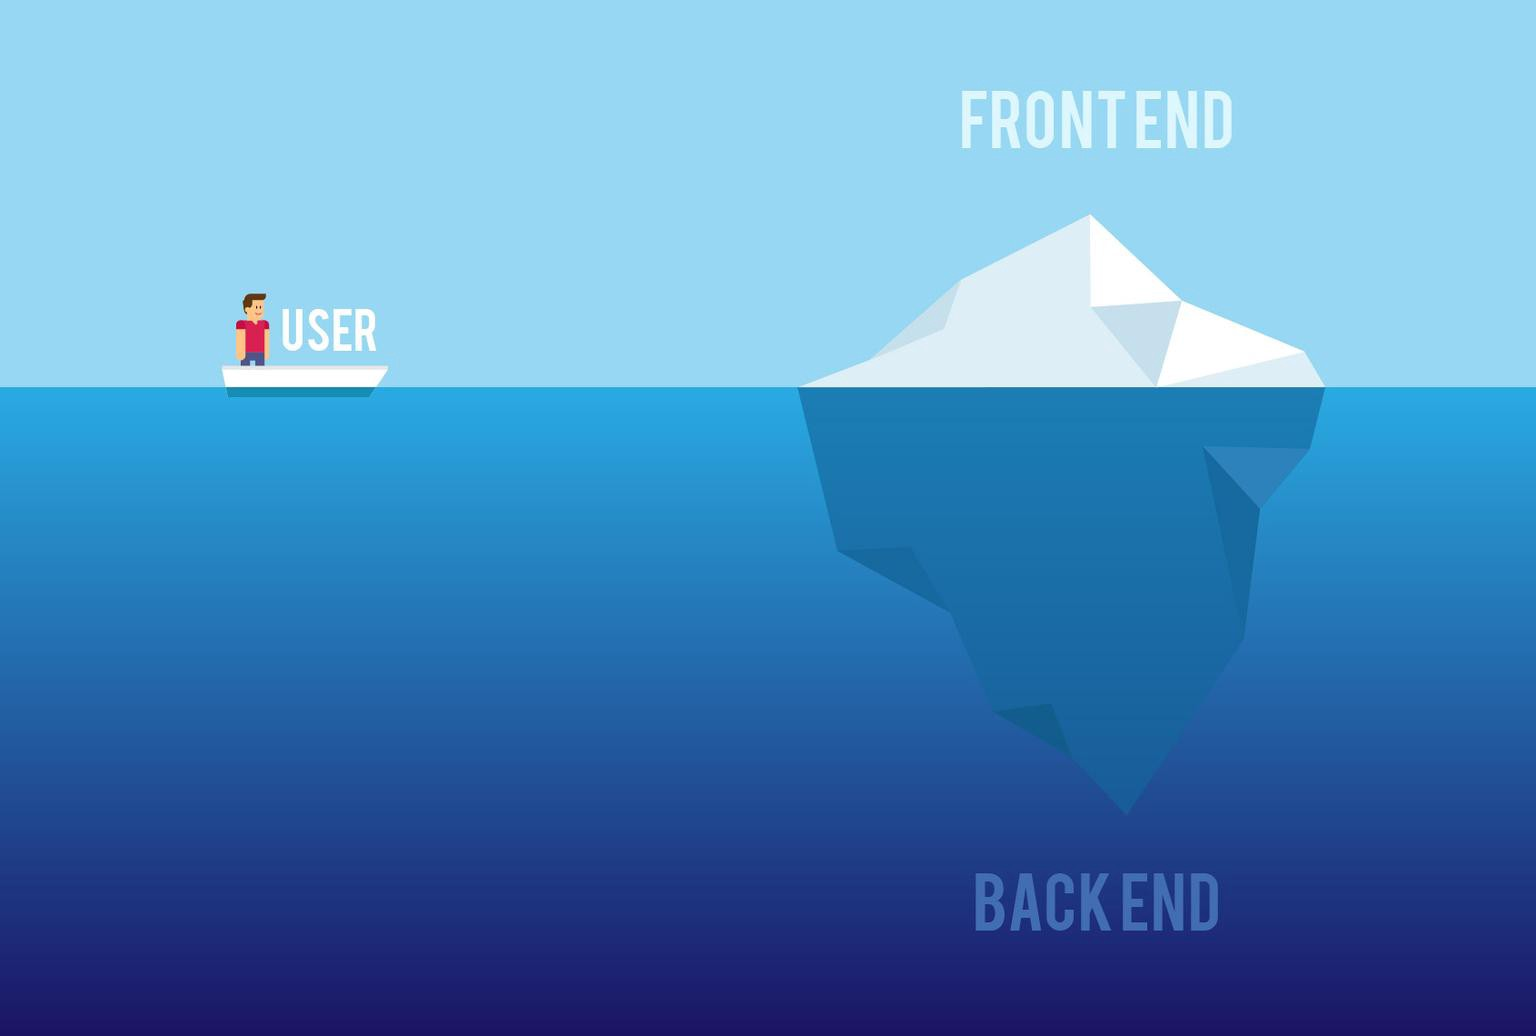 Frontend is what you see whereas Backend even though hidden, stands as a strong pillar of support for the entire website.